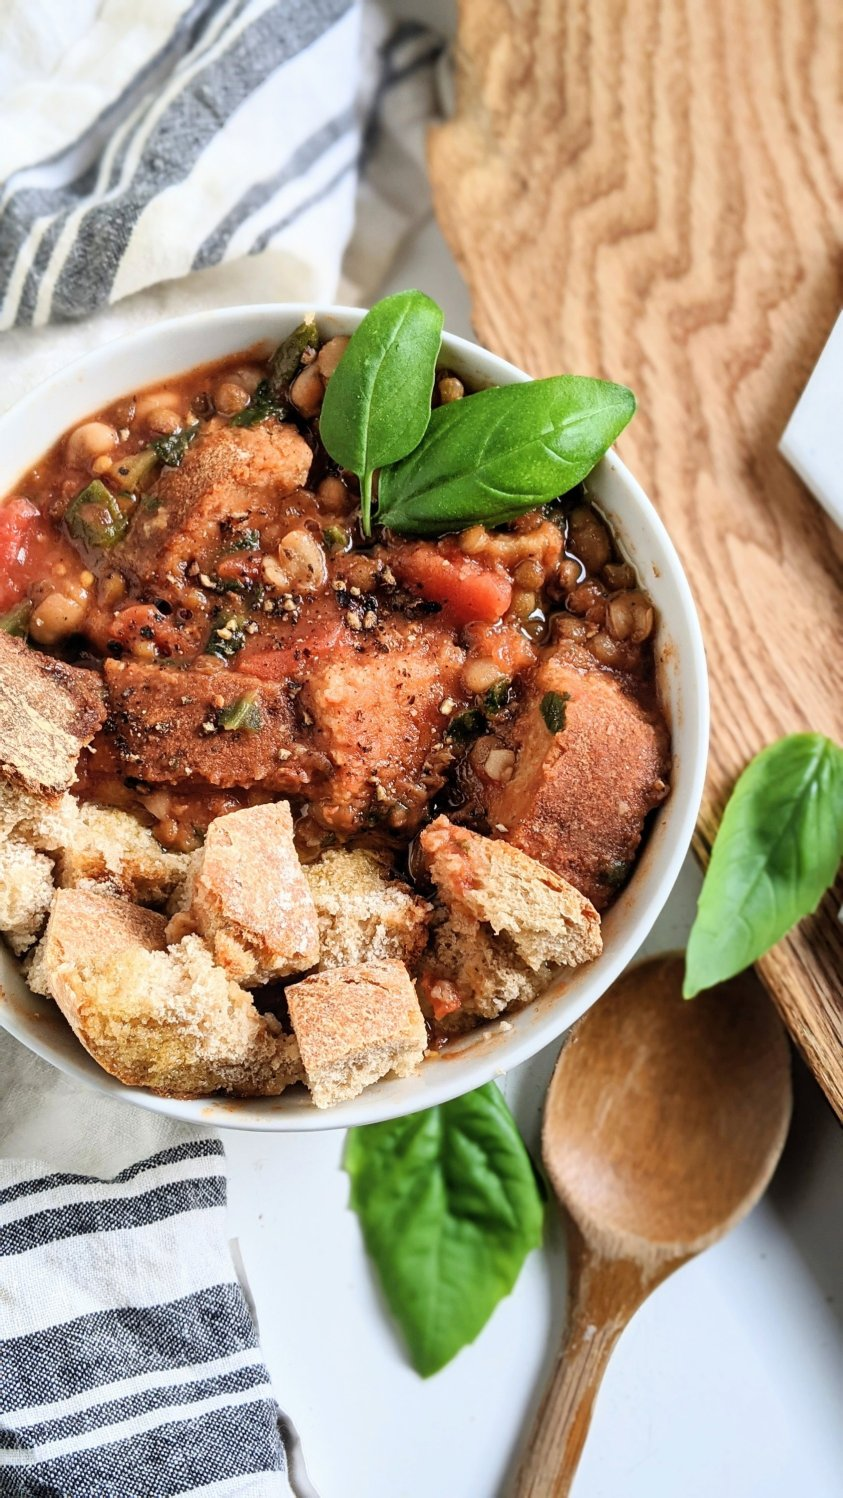 ways to use stale bread recipe gluten free vegan vegetarian cheap inexpensive recipes with old bread hard stale bread crust recipes repurpose into soup thicken soup with bread crusts